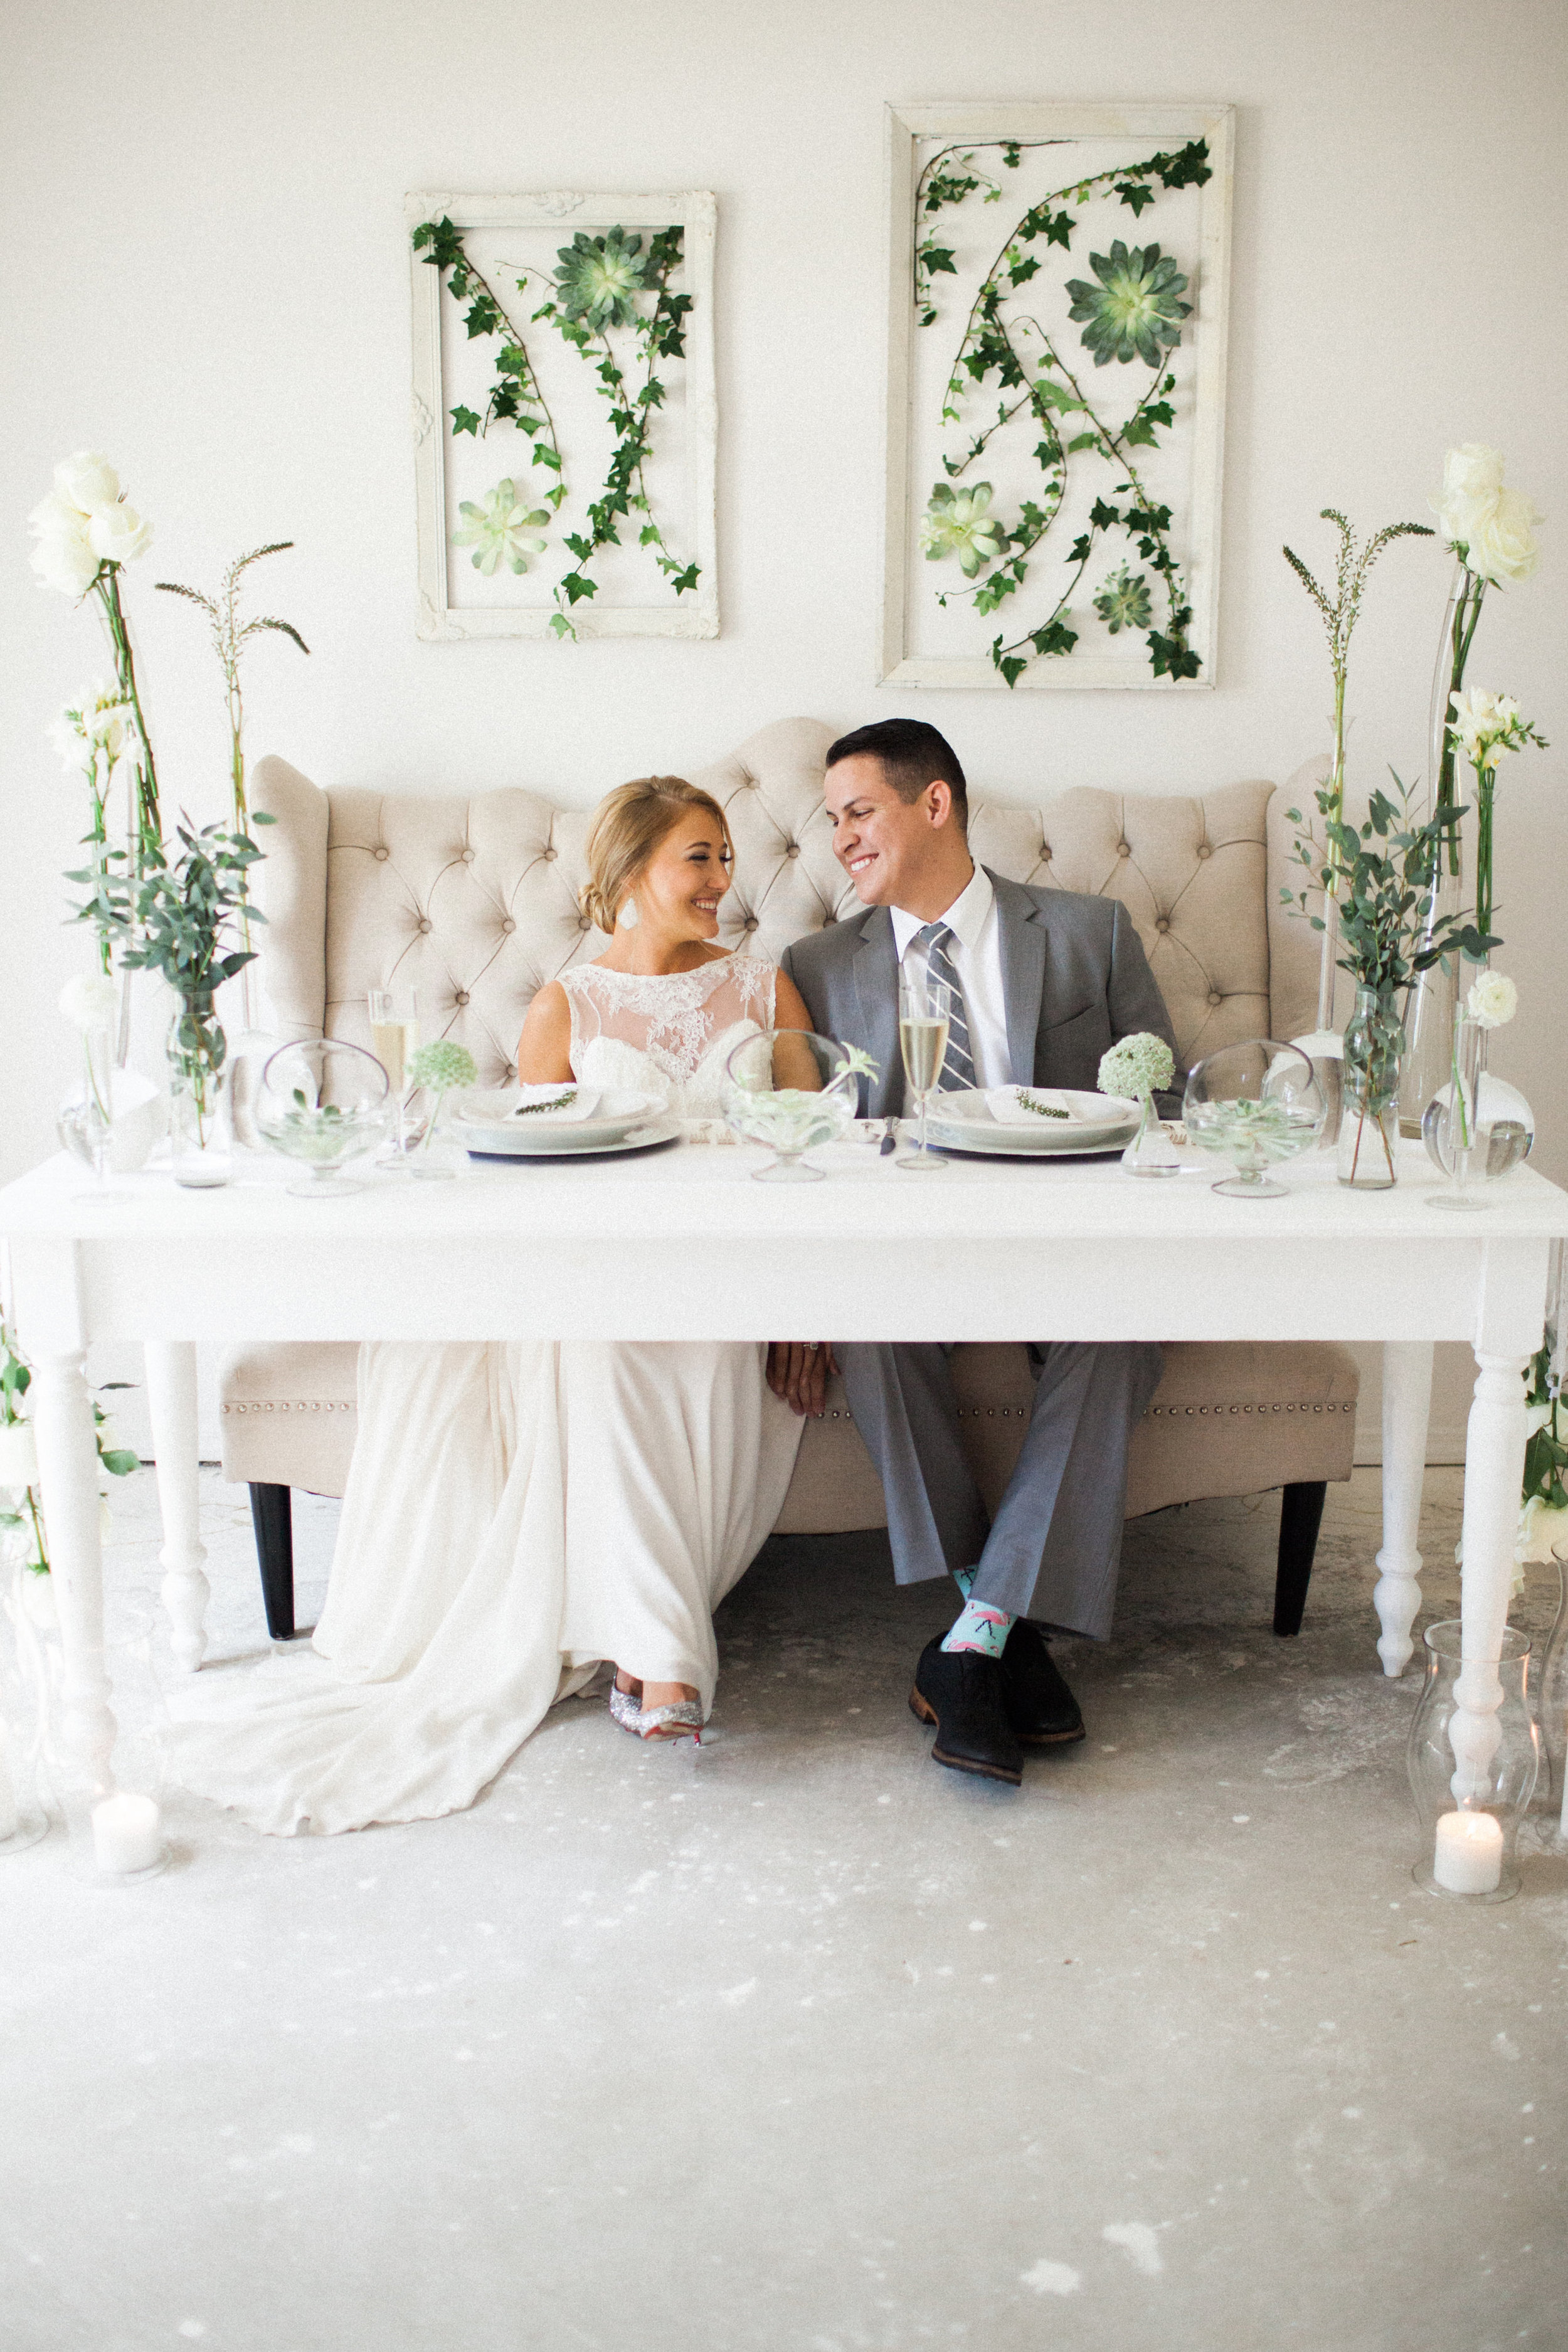 ivey-weddings-cassie-olimb-photography-broome-sarah-seven-wedding-dress-ivory-and-beau-bridal-boutique-savannah-wedding-dresses-savannah-bridal-gowns-savannah-weddings-jacksonville-weddings-jacksonville-bridal-florida-bridal-boutique-9.jpg